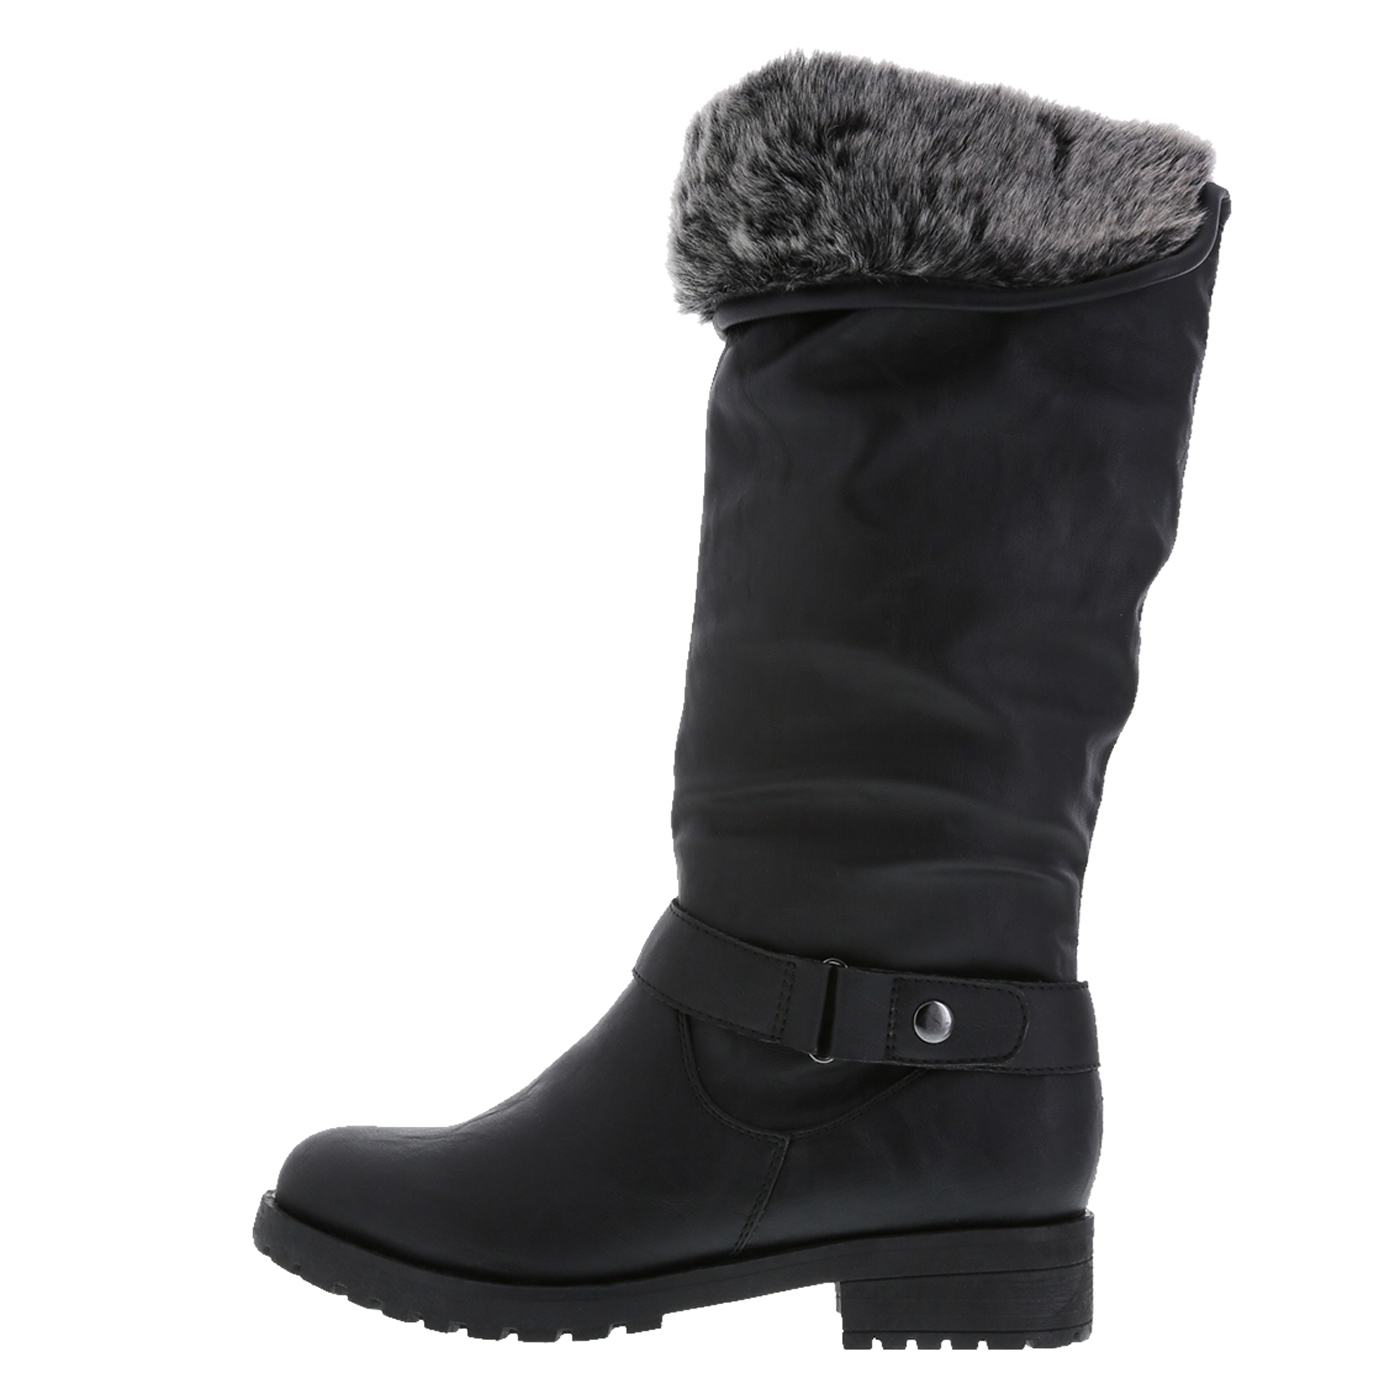 Tall Womens Boots gYl0Aa8s